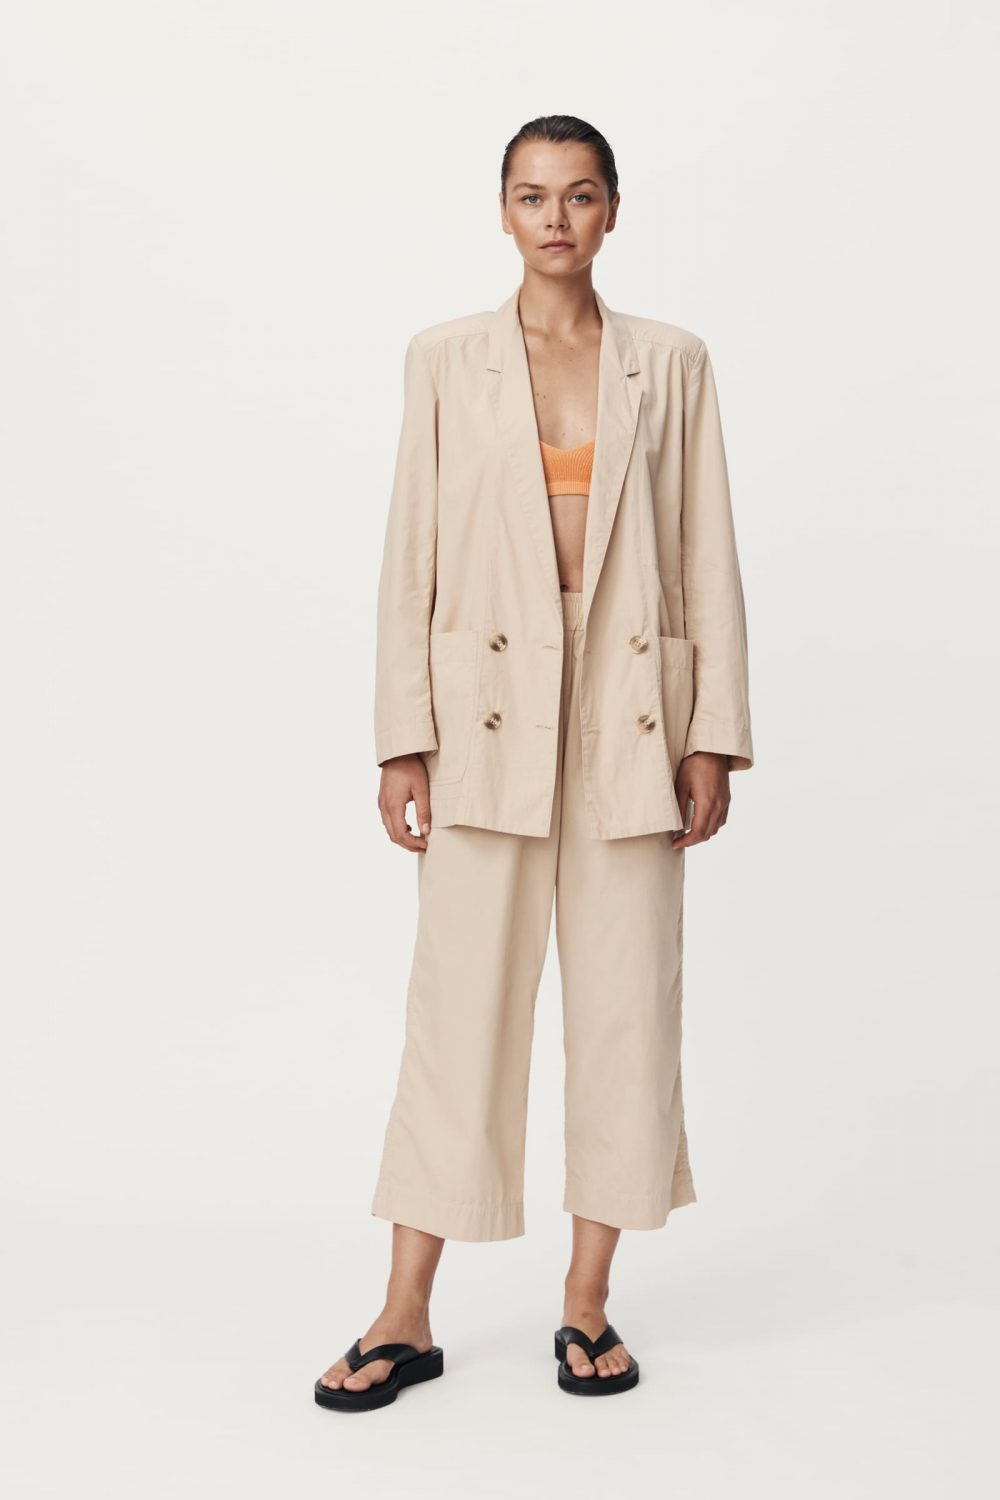 Rowie The Label Rs21 Popf Phillip Organic Pant Fawn Spring21 0161